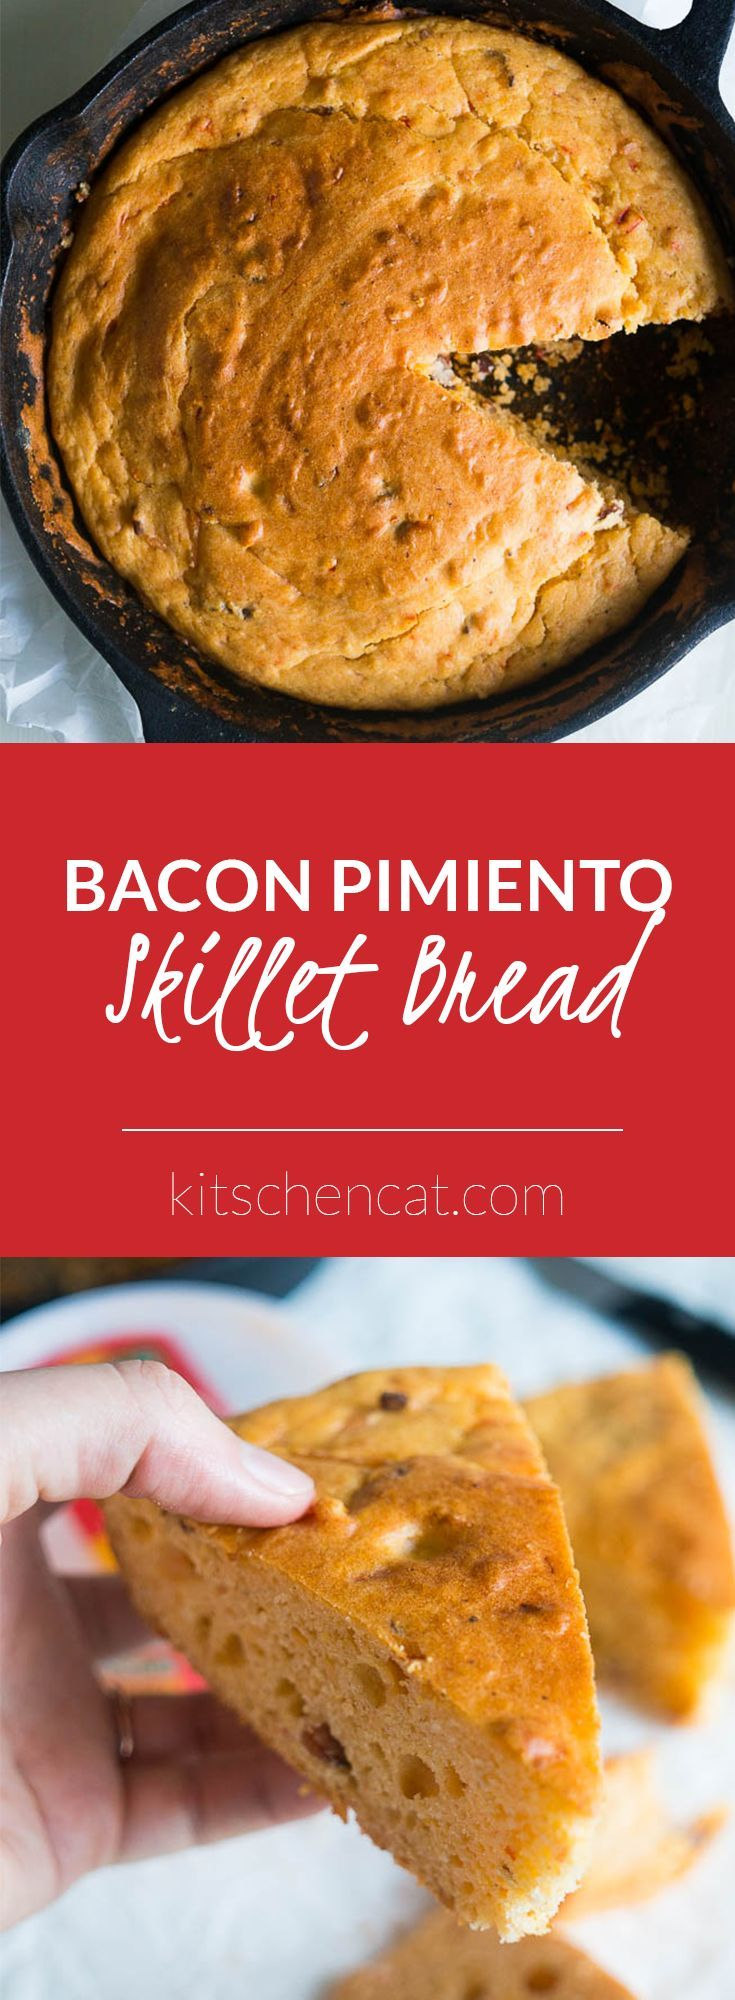 Bacon Pimiento Cheese Skillet Bread is the perfect after-school snack or easy side to any meal! Mix and bake all in one skillet!